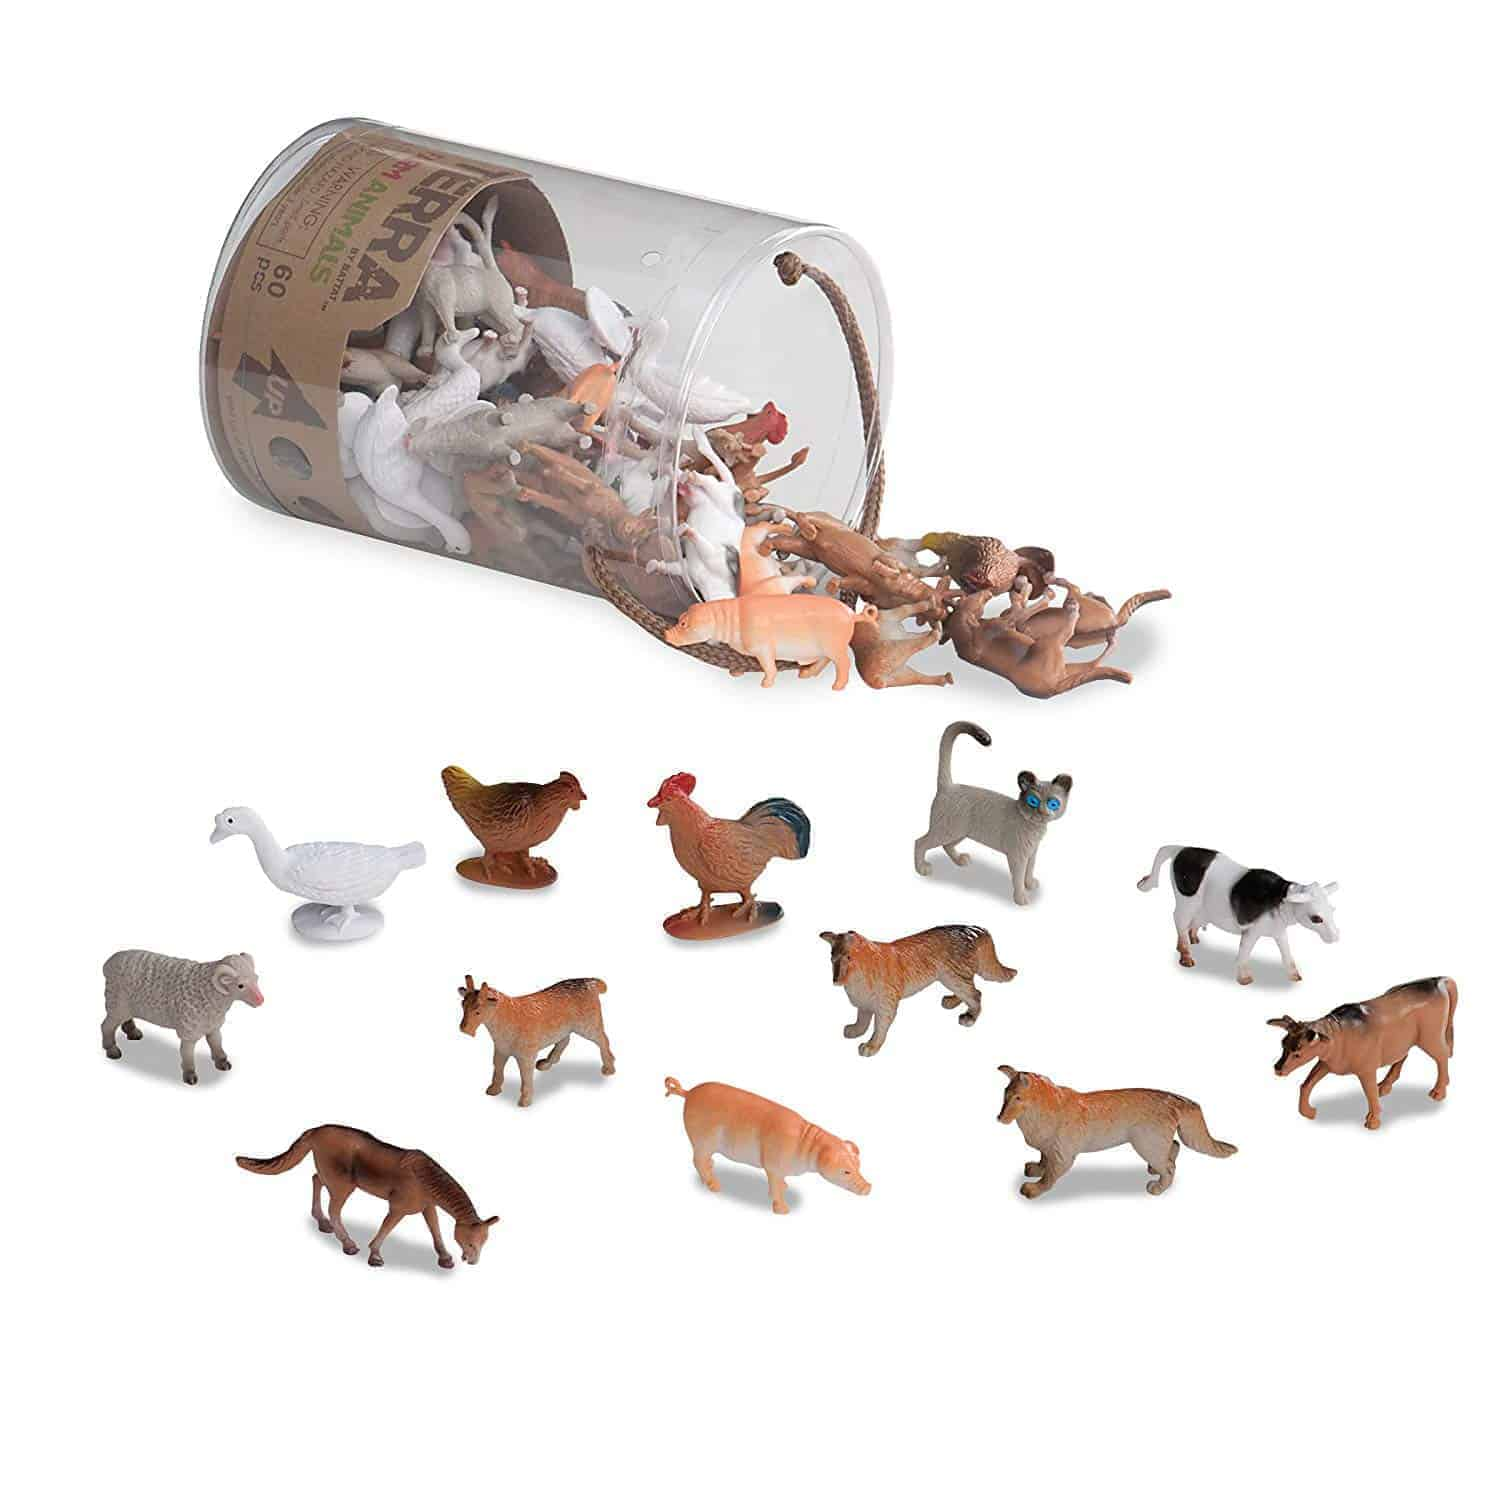 mini farm animals gifts toys figures | kimschob.com